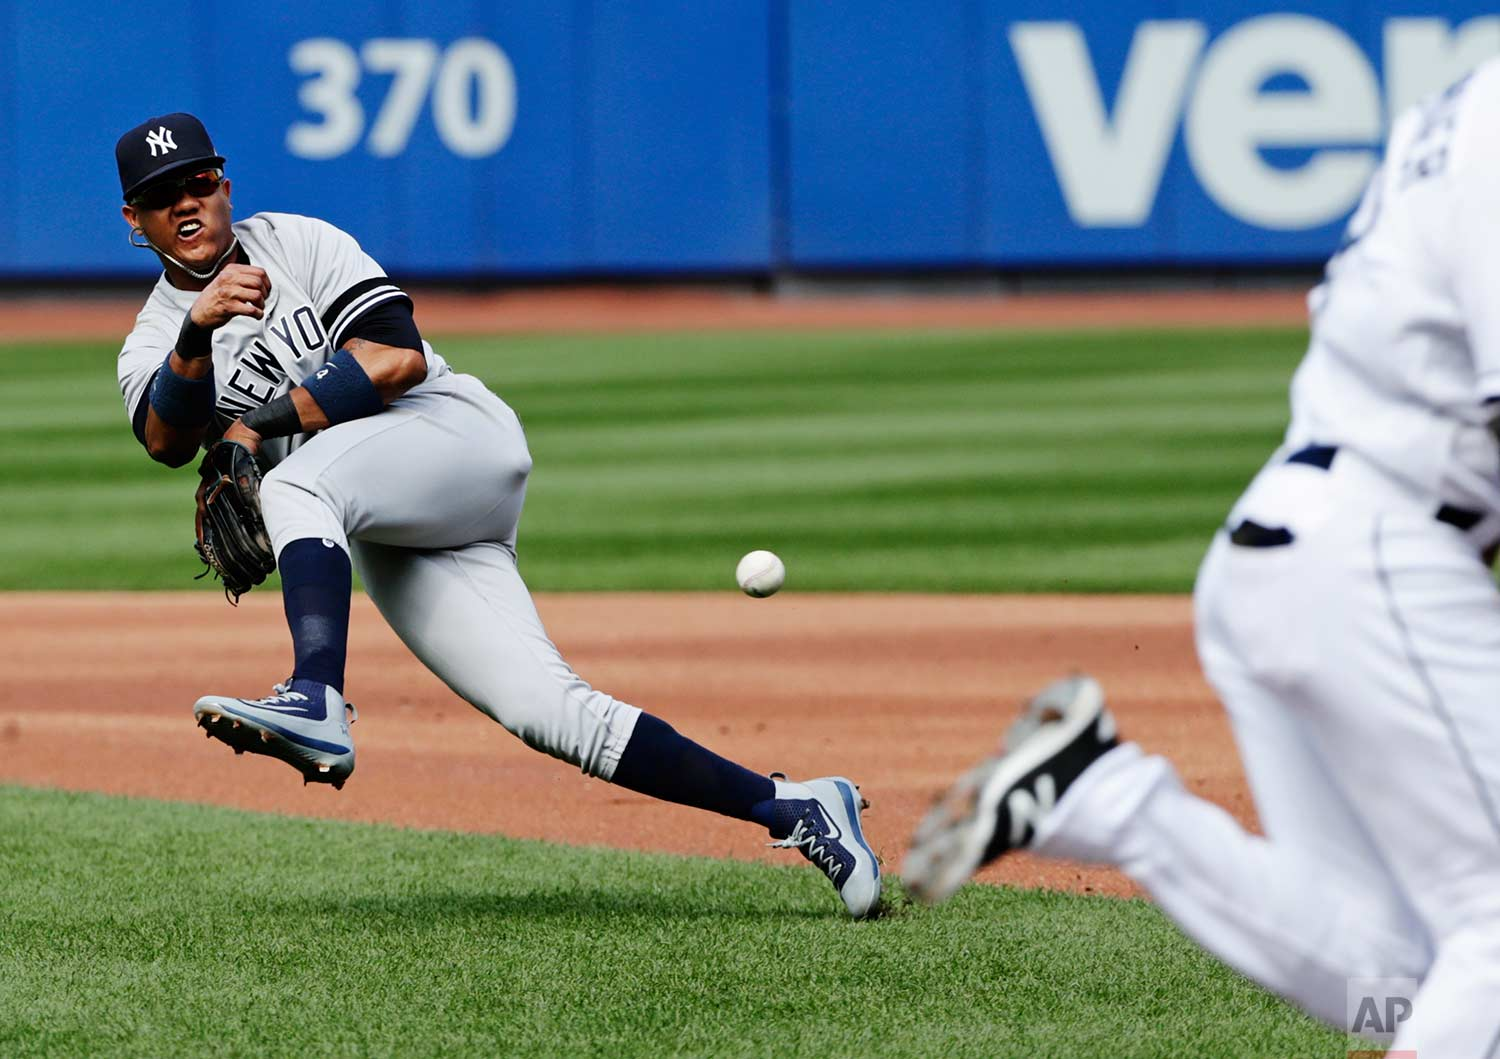 New York Yankees second baseman Starlin Castro attempts to throw out Tampa Bay Rays' Kevin Kiermaier at first base during the first inning of a baseball game Wednesday, Sept. 13, 2017, in New York. Kiermaier was safe at first base on the play. (AP Photo/Frank Franklin II)